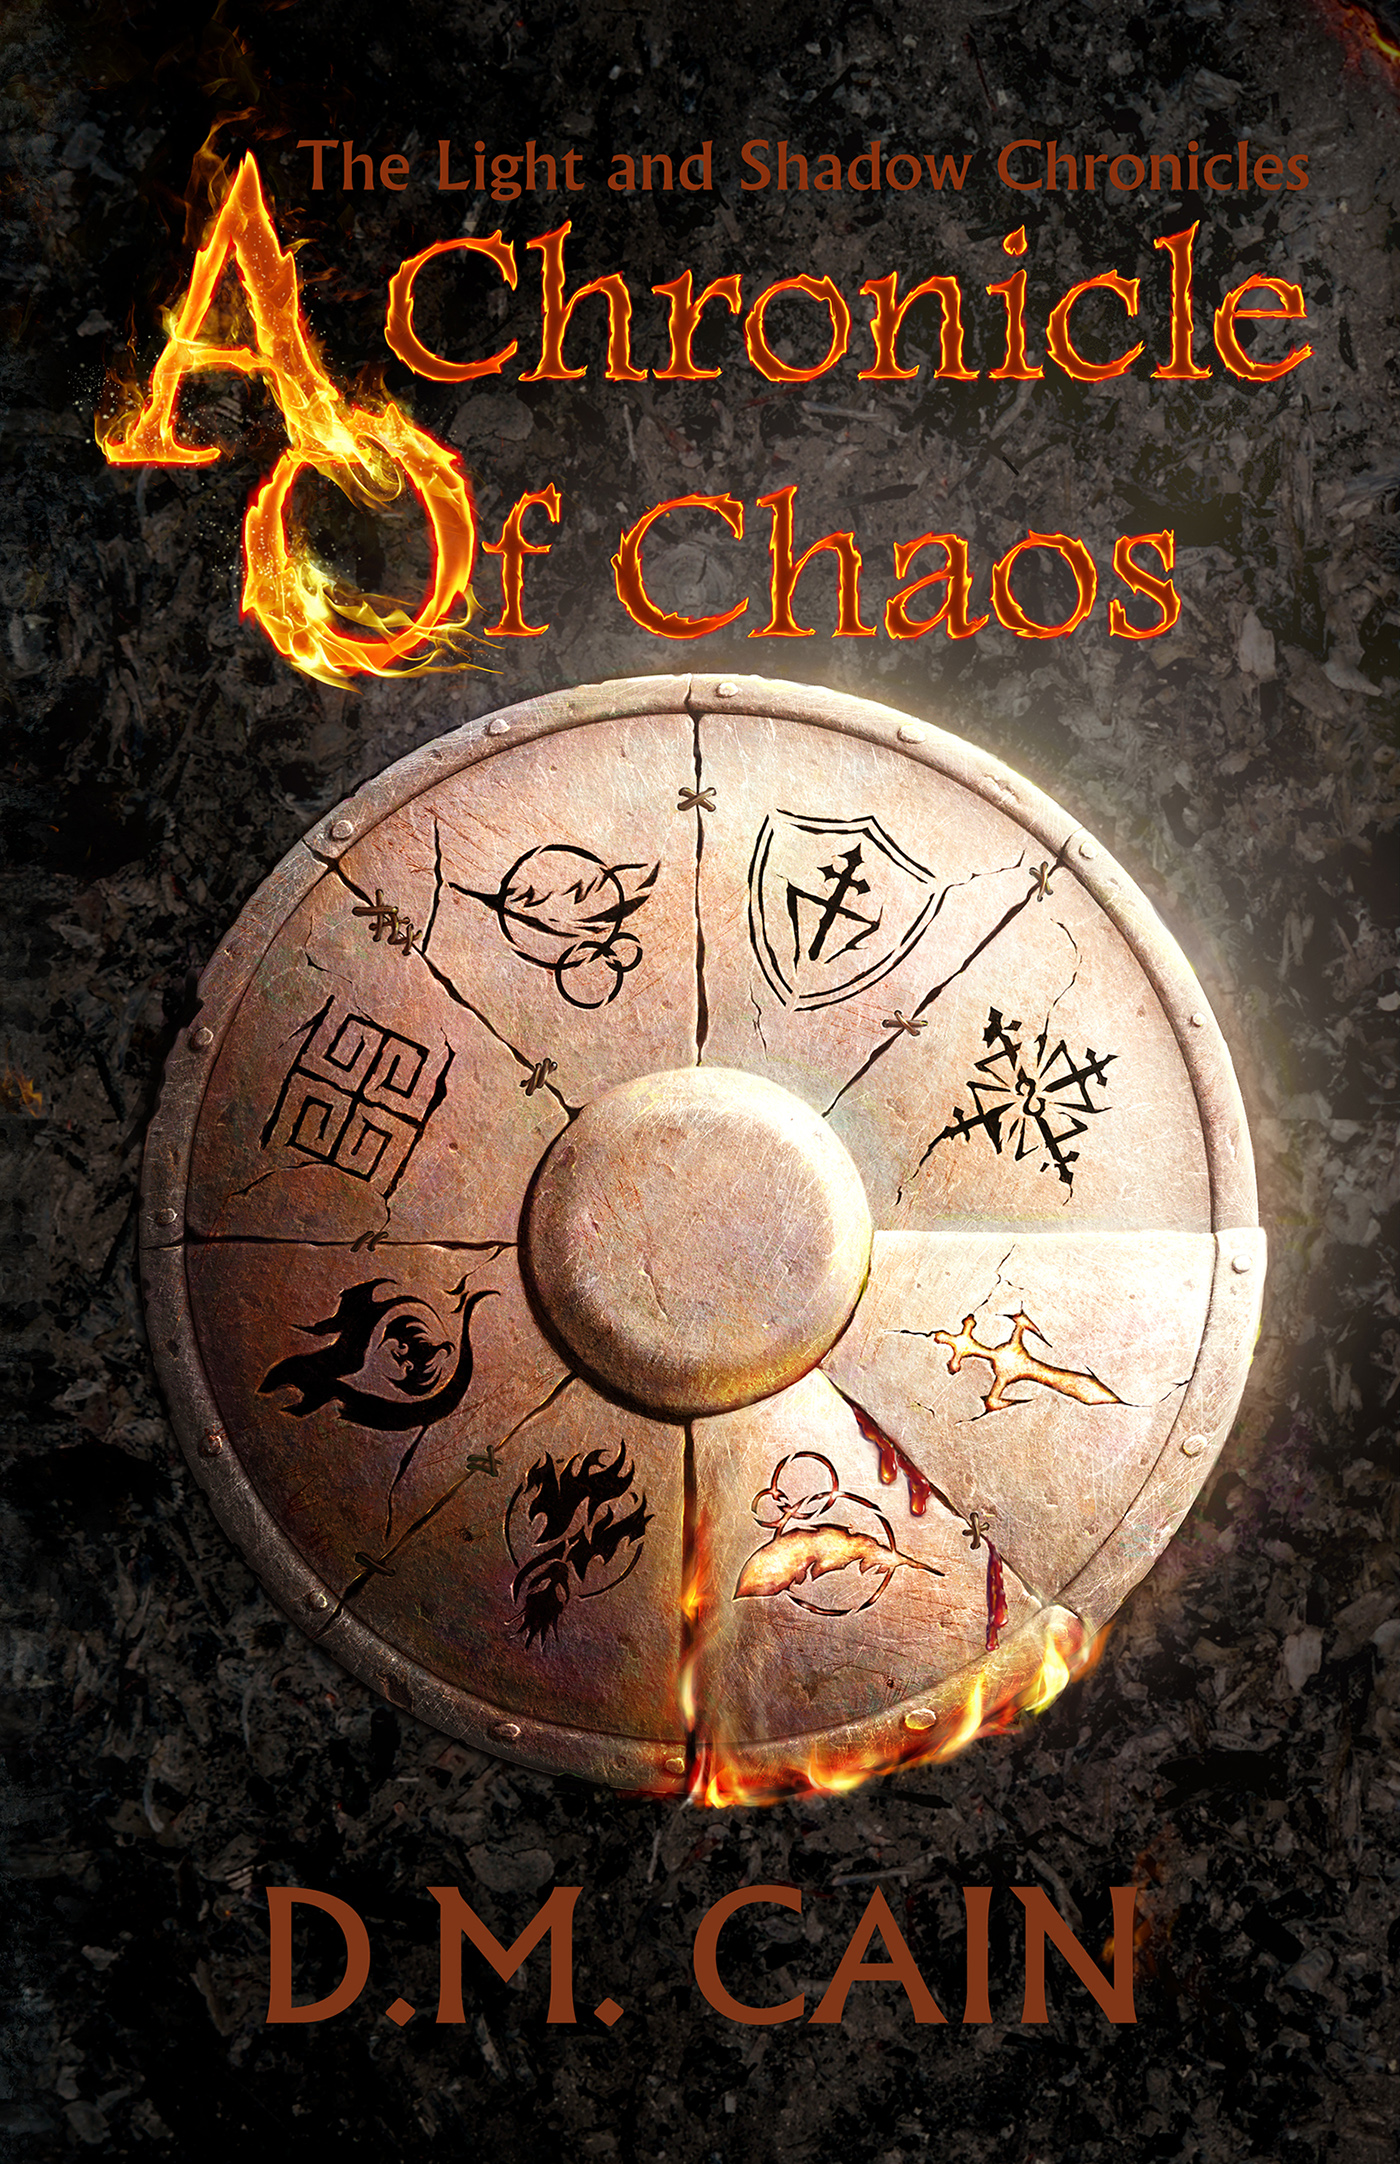 a-chronicle-of-chaos-by-d-m-cain